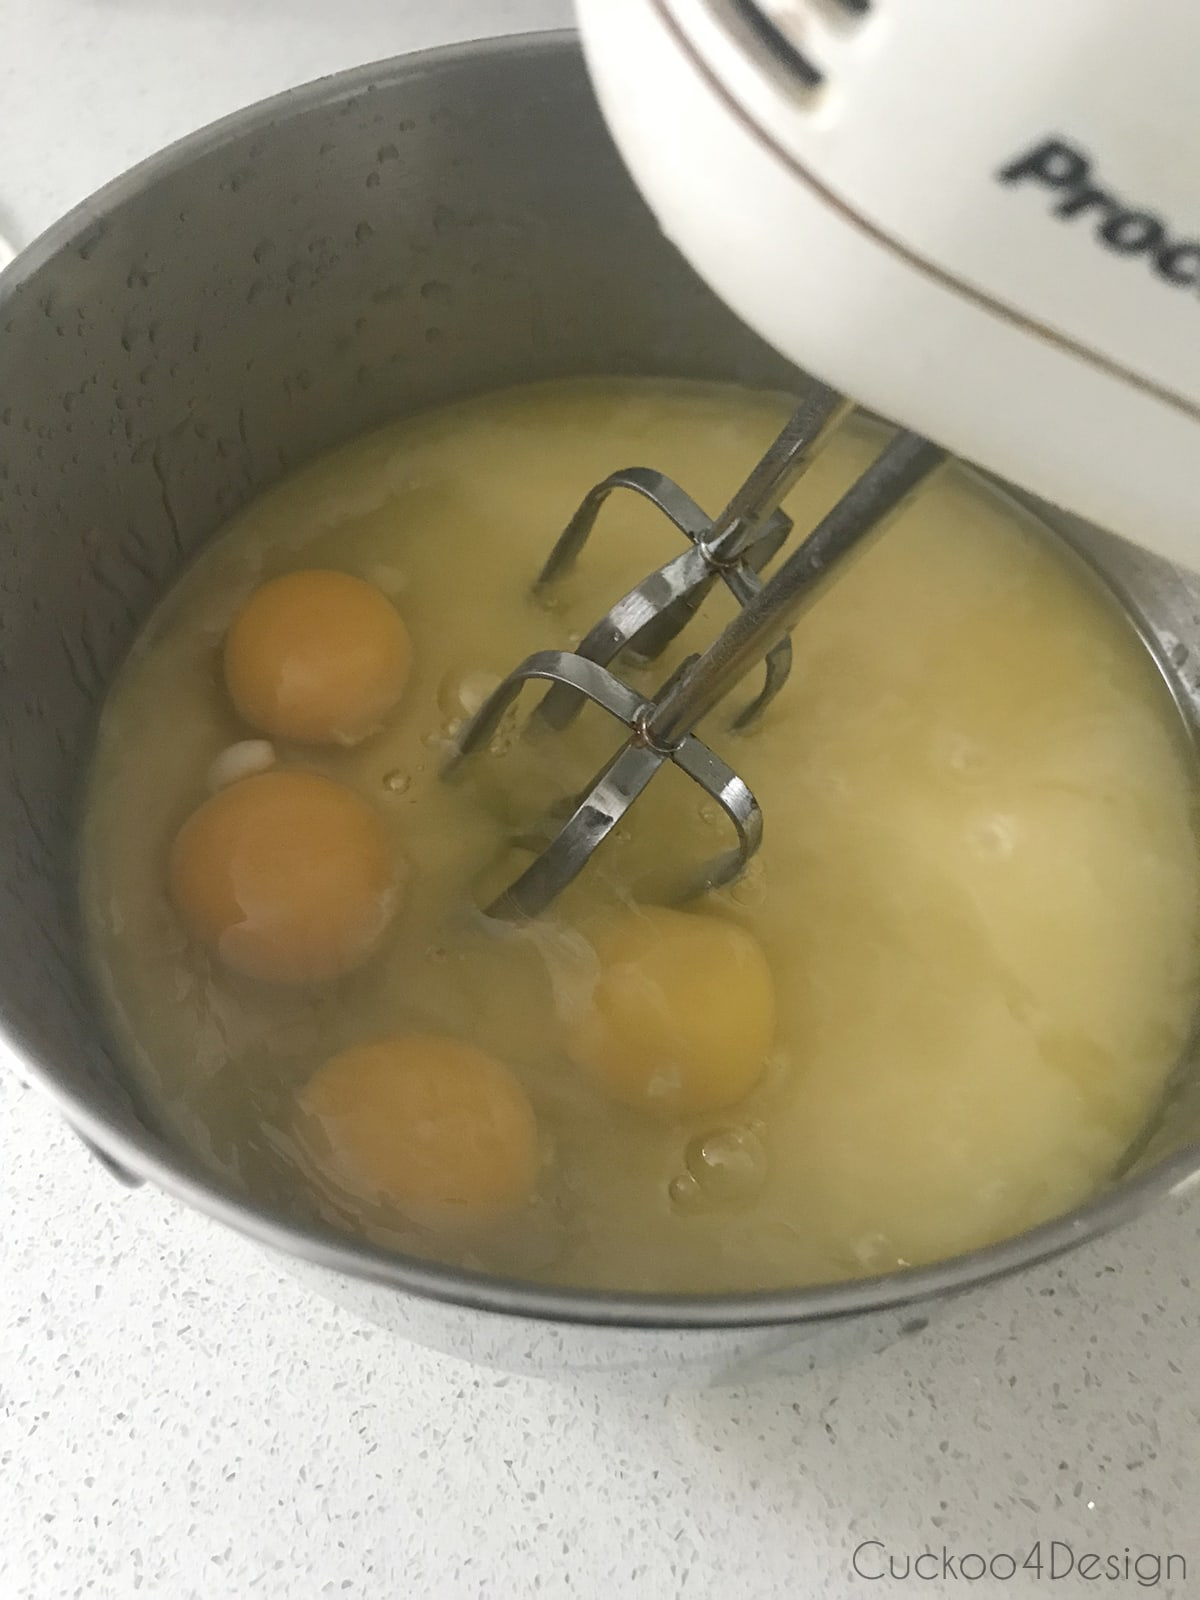 mixing eggs, sugar and butter for German layered cake